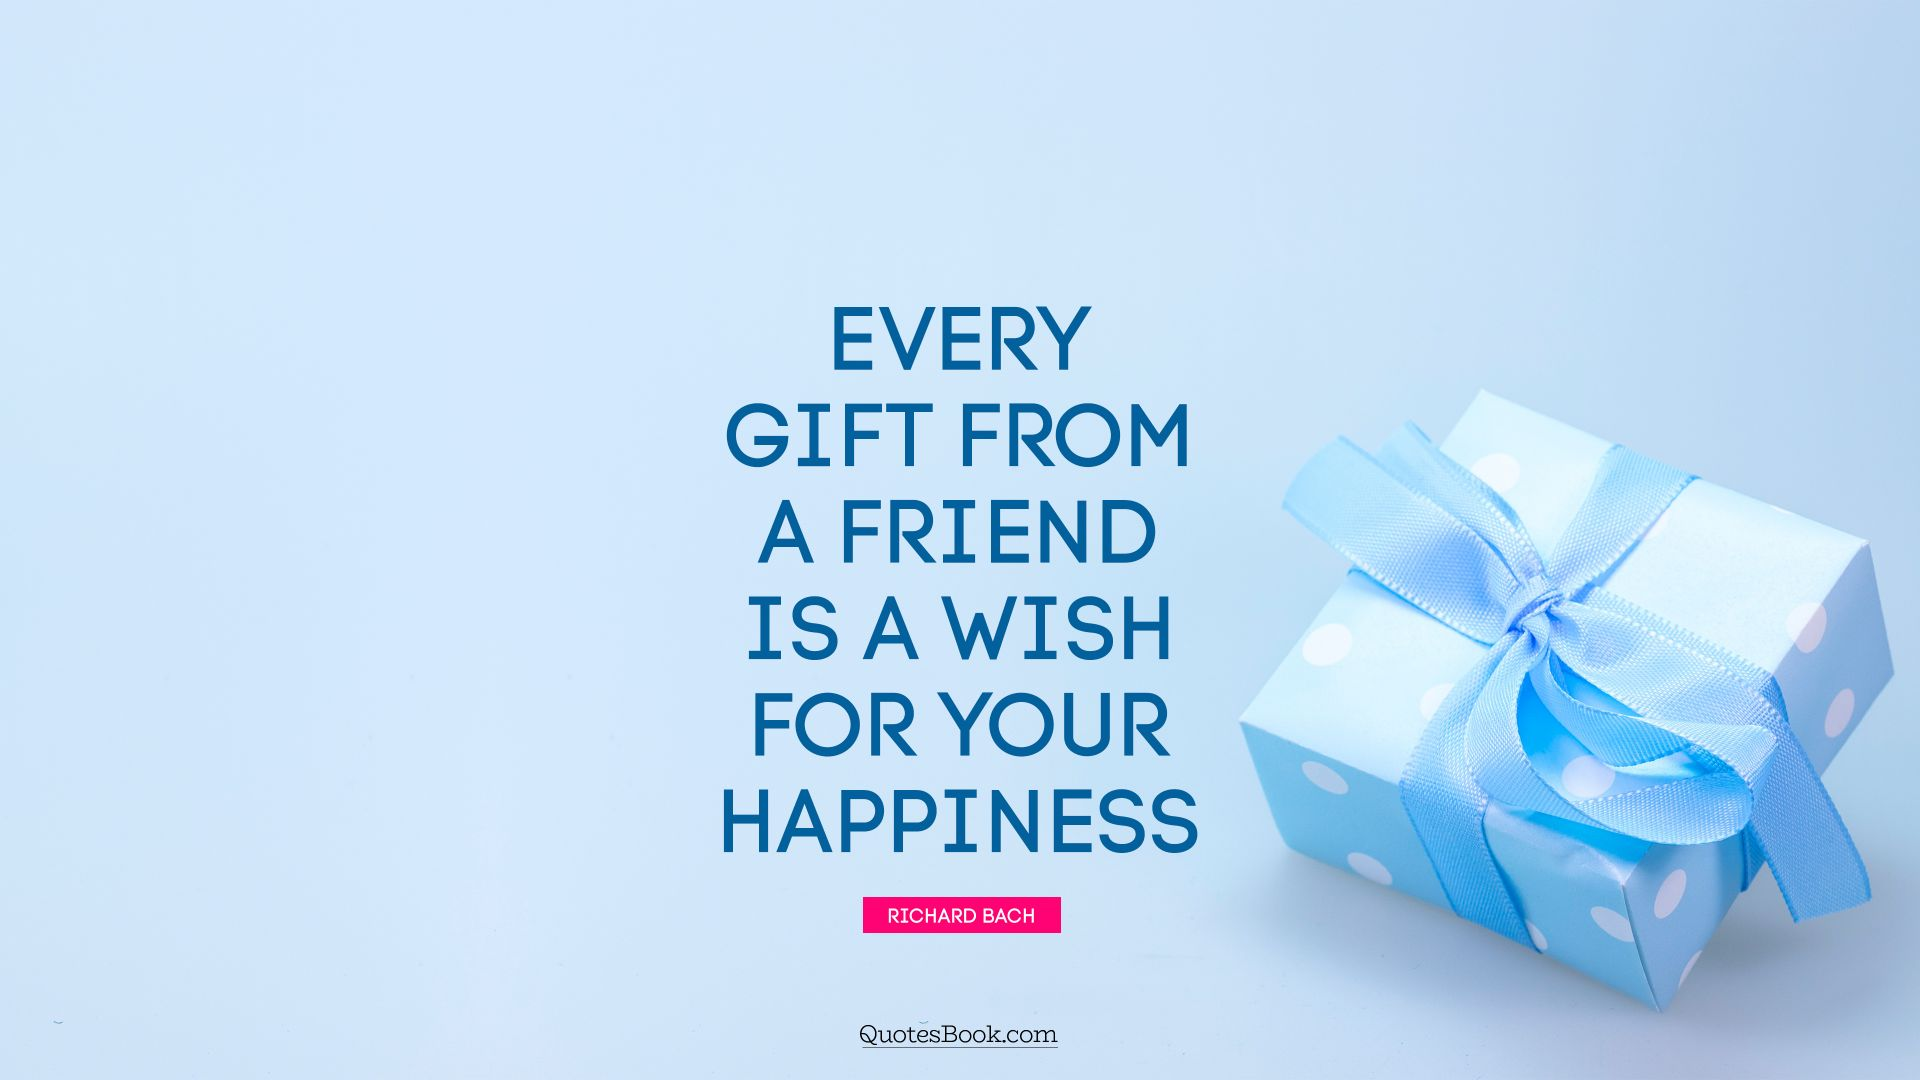 Every gift from a friend is a wish for your happiness. - Quote by Richard Bach